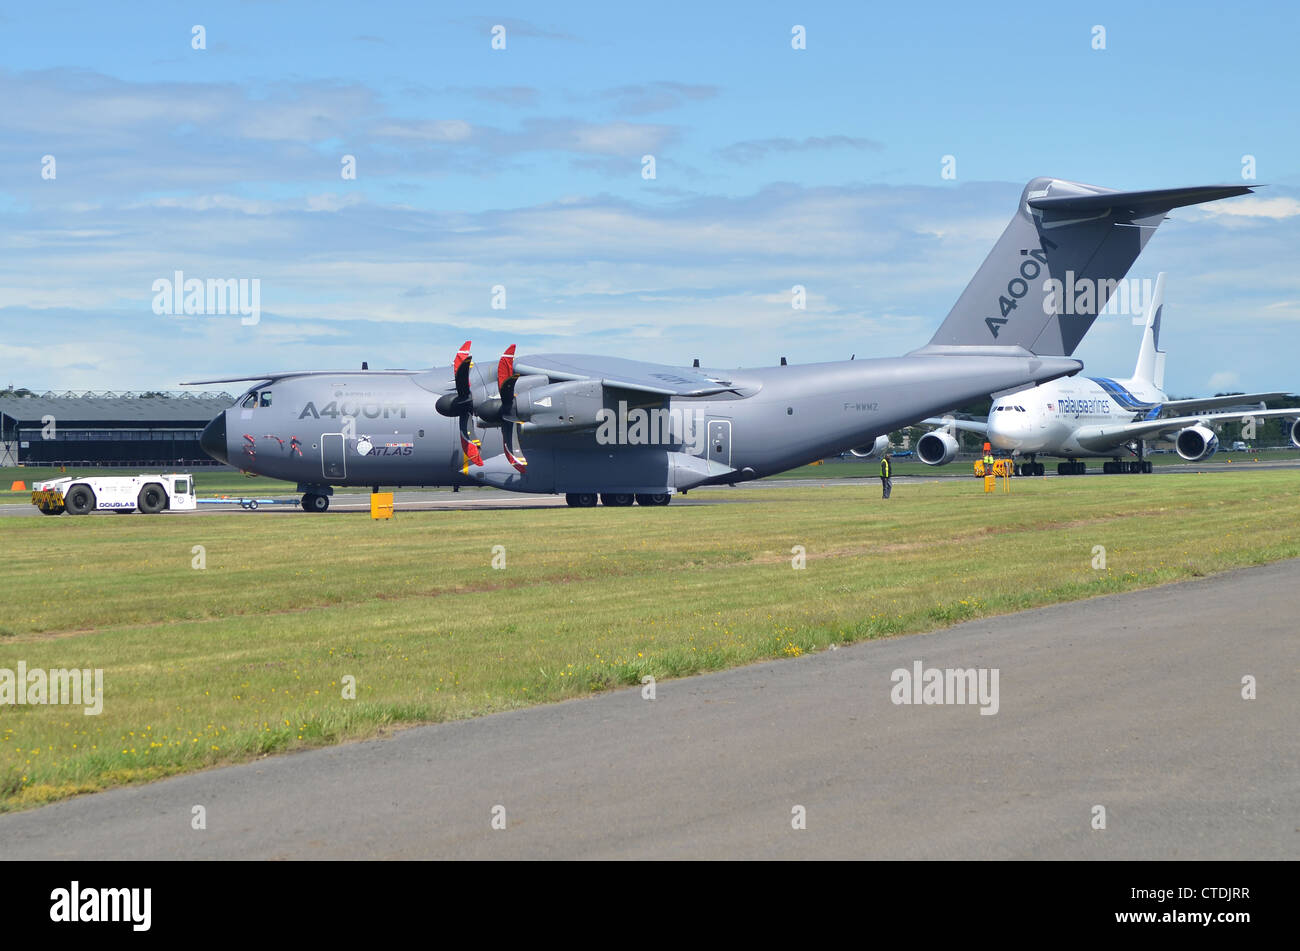 Airbus Military A400M being pushed back at Farnborough International Airshow, 2012. - Stock Image